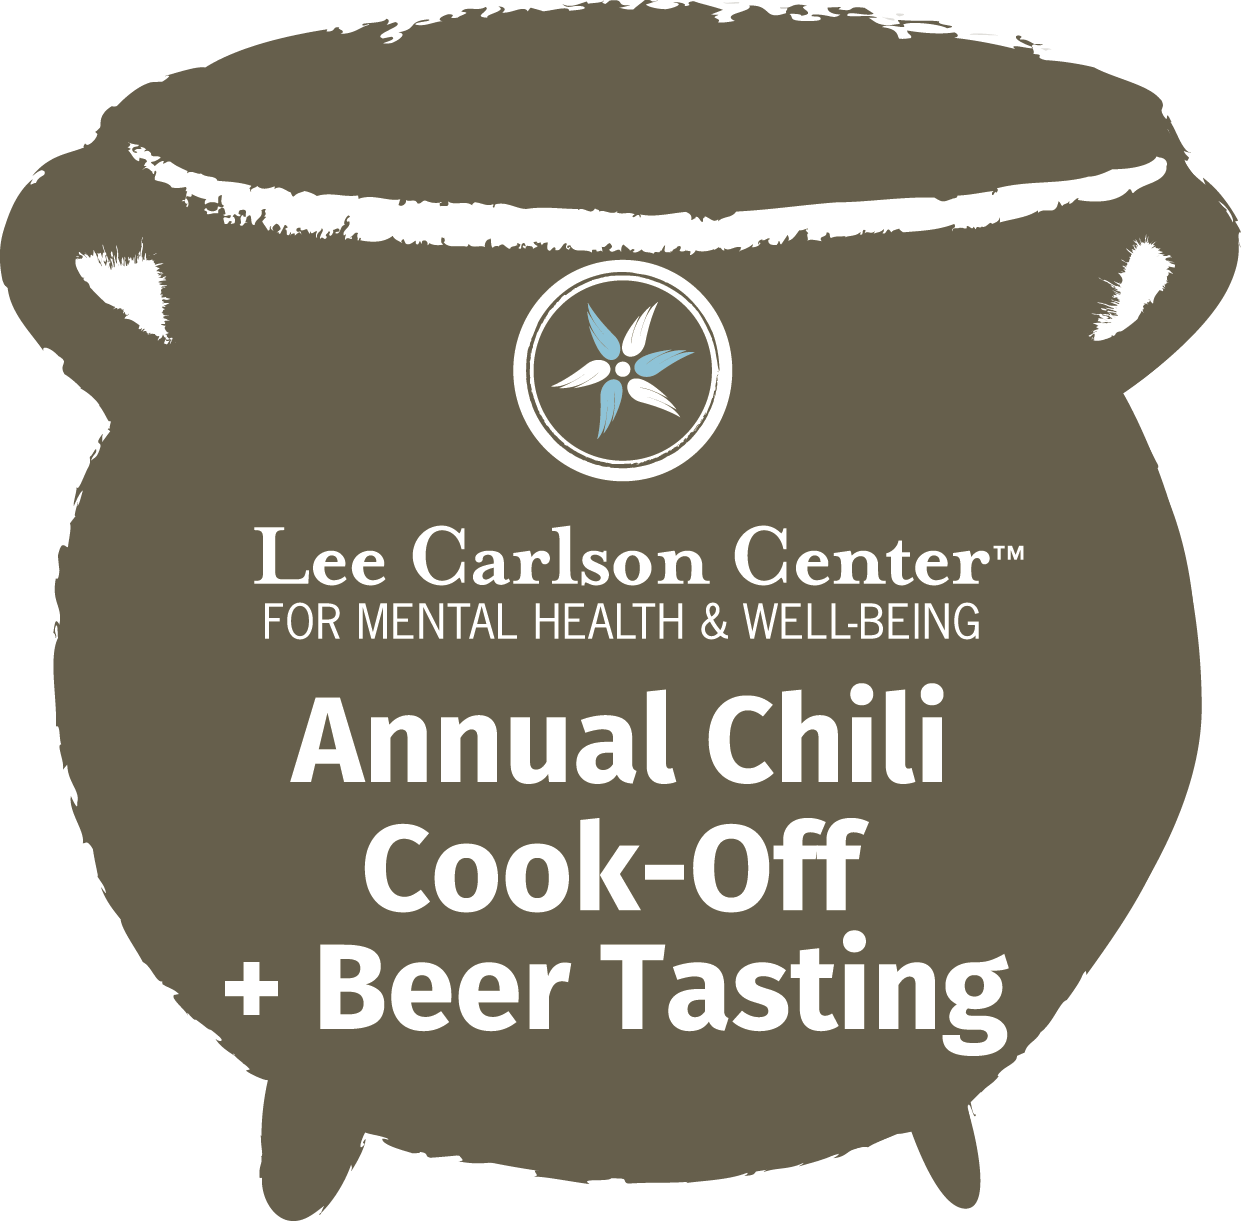 chilicookofflogo2018.png